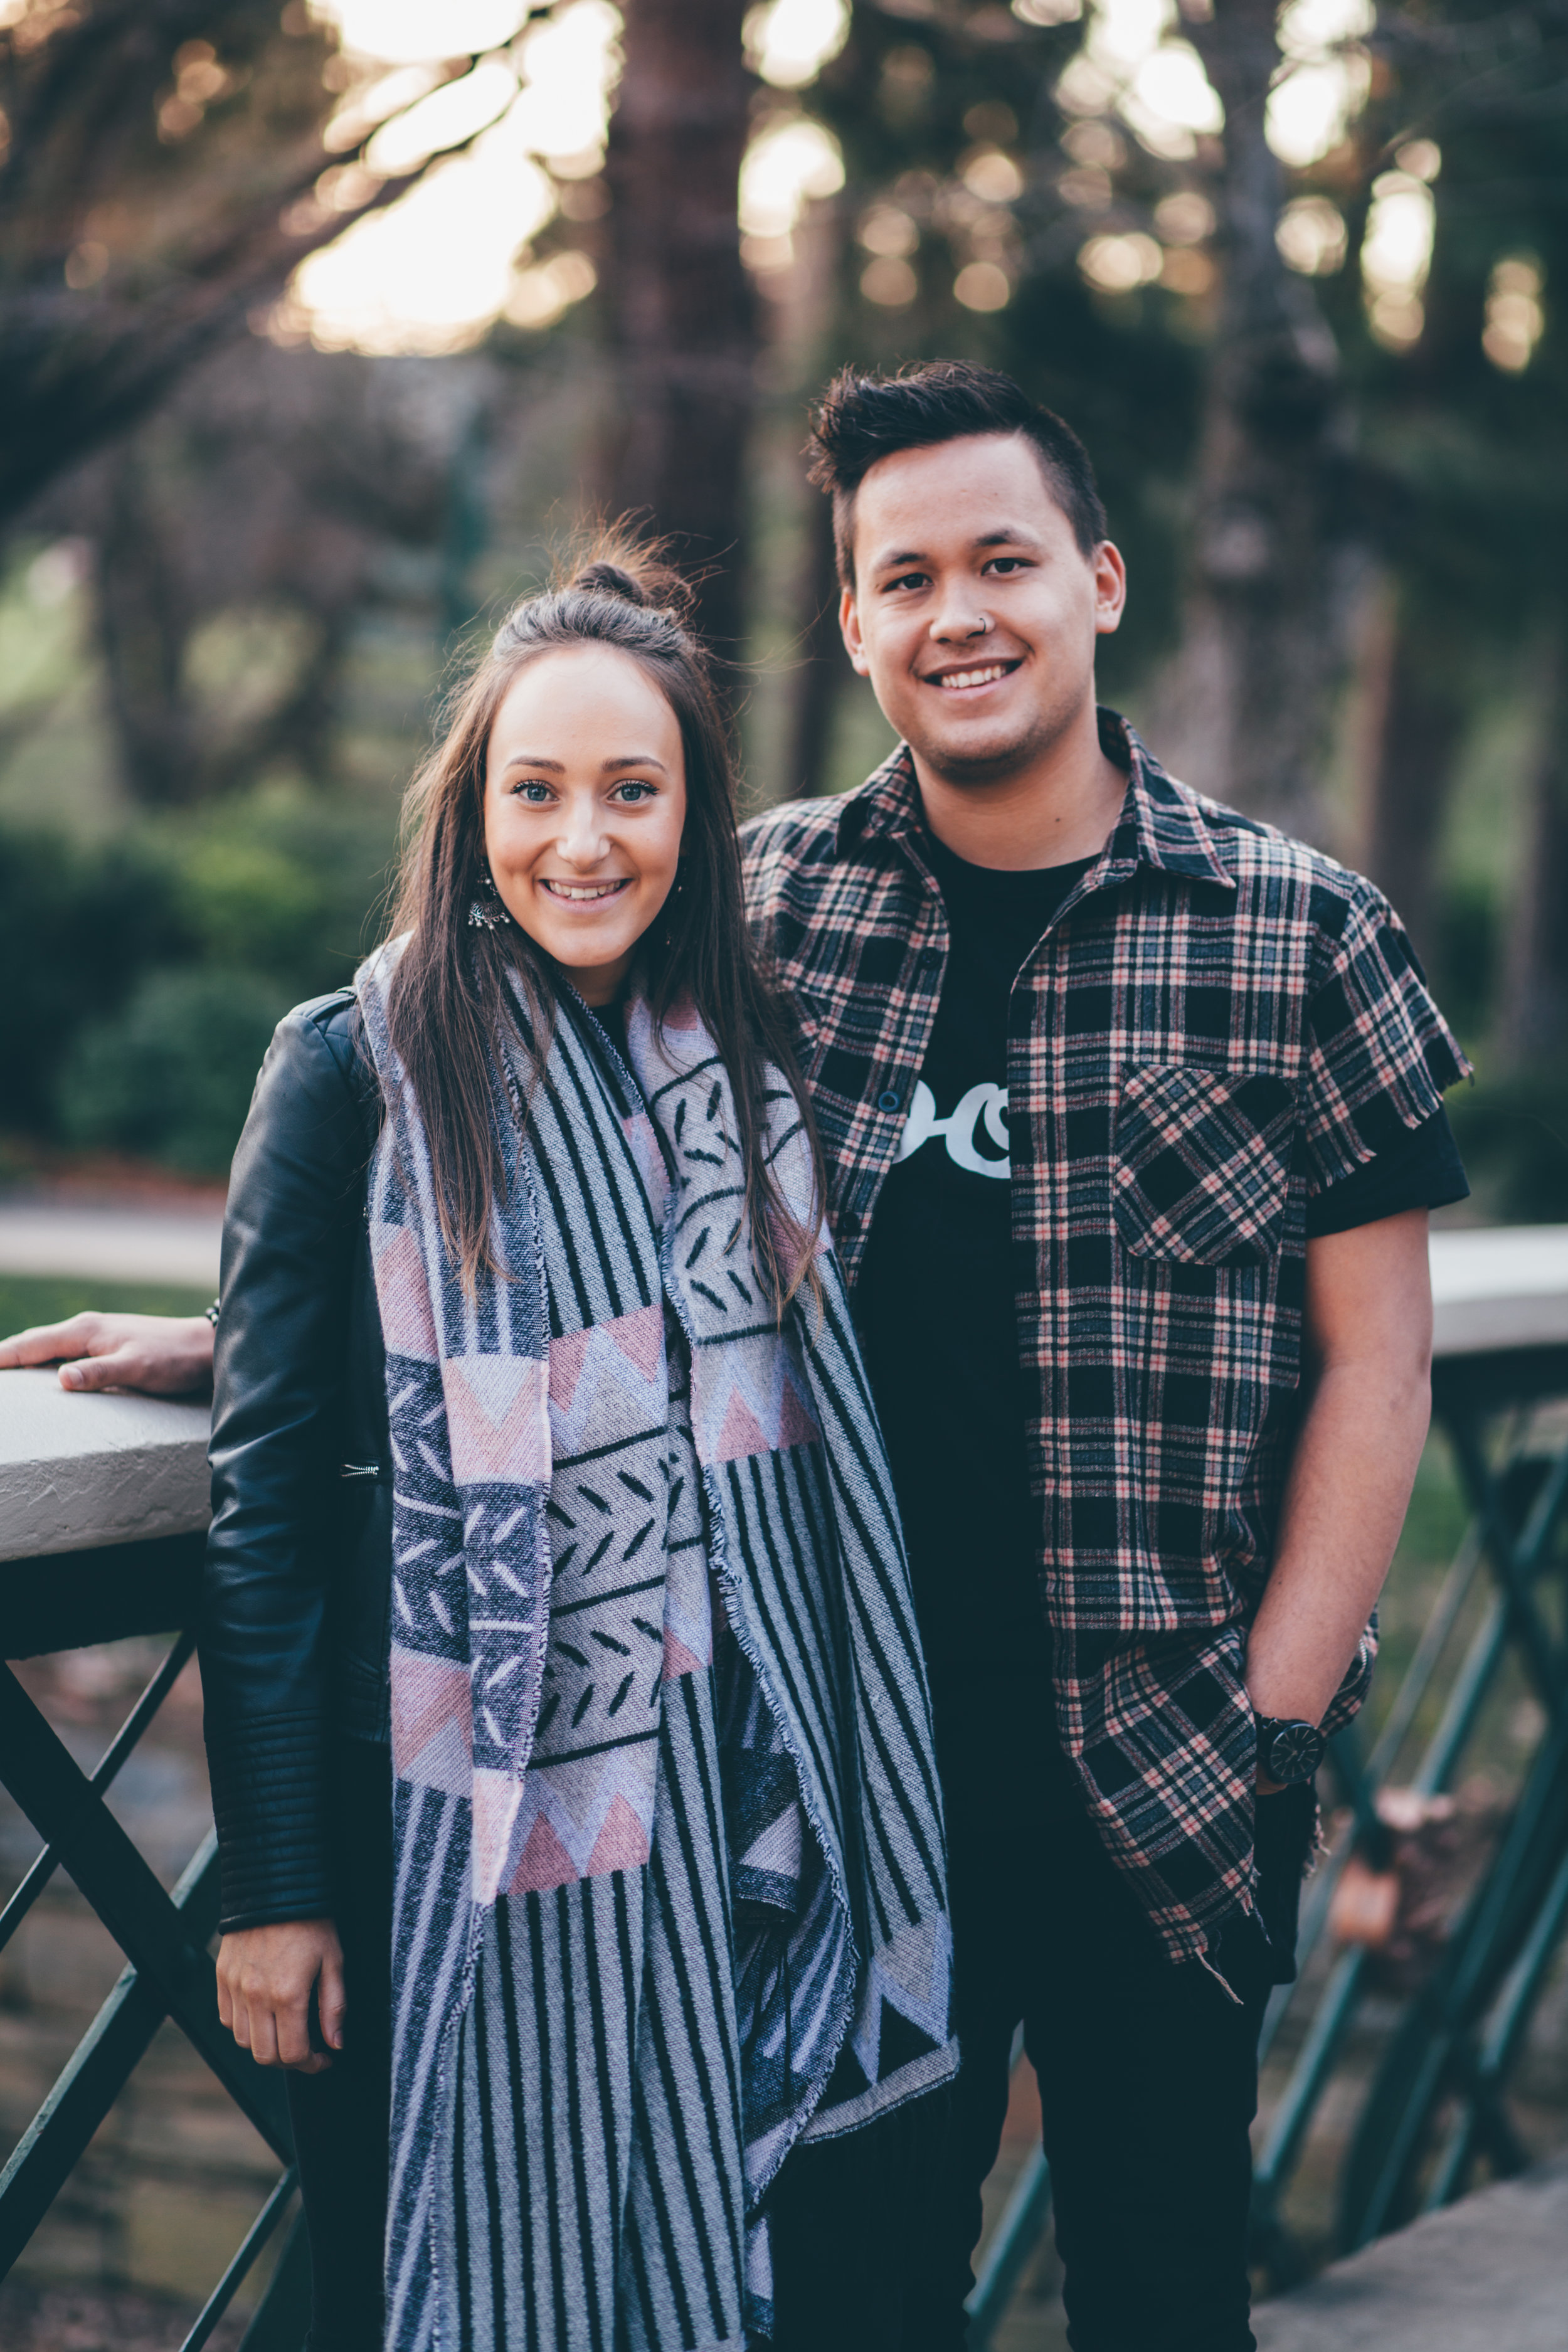 Pastor Mason & Jessica Hudson:  Generational Pastors here at Victory Church. Mason and Jessica oversee our Kids, Youth and Young Adults ministries.  E:mason@victorycc.com.au  jessica.hudson@victorycc.com